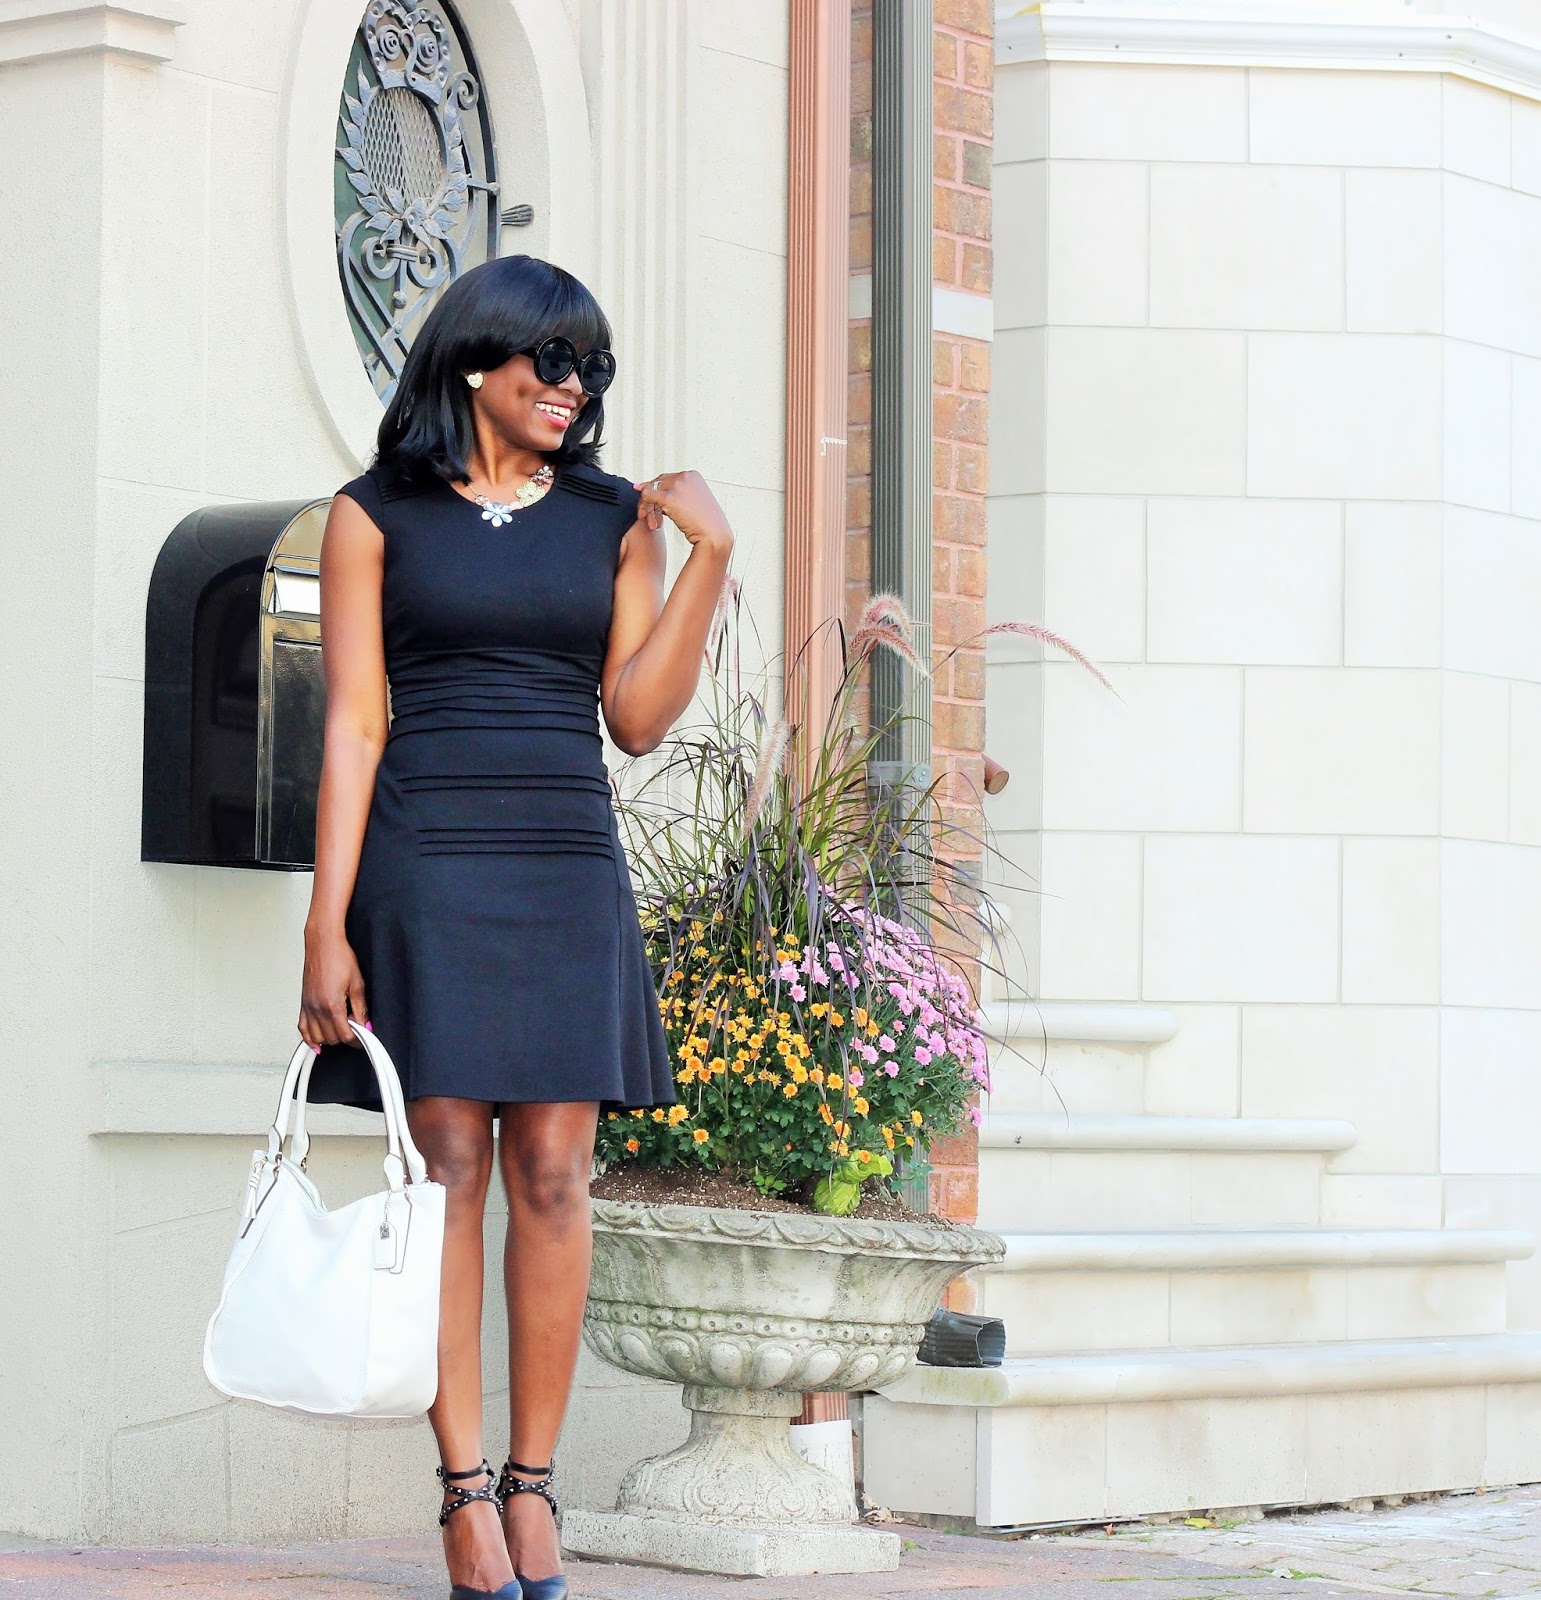 Classically chic: Black Dress, white bag and a red lipstick